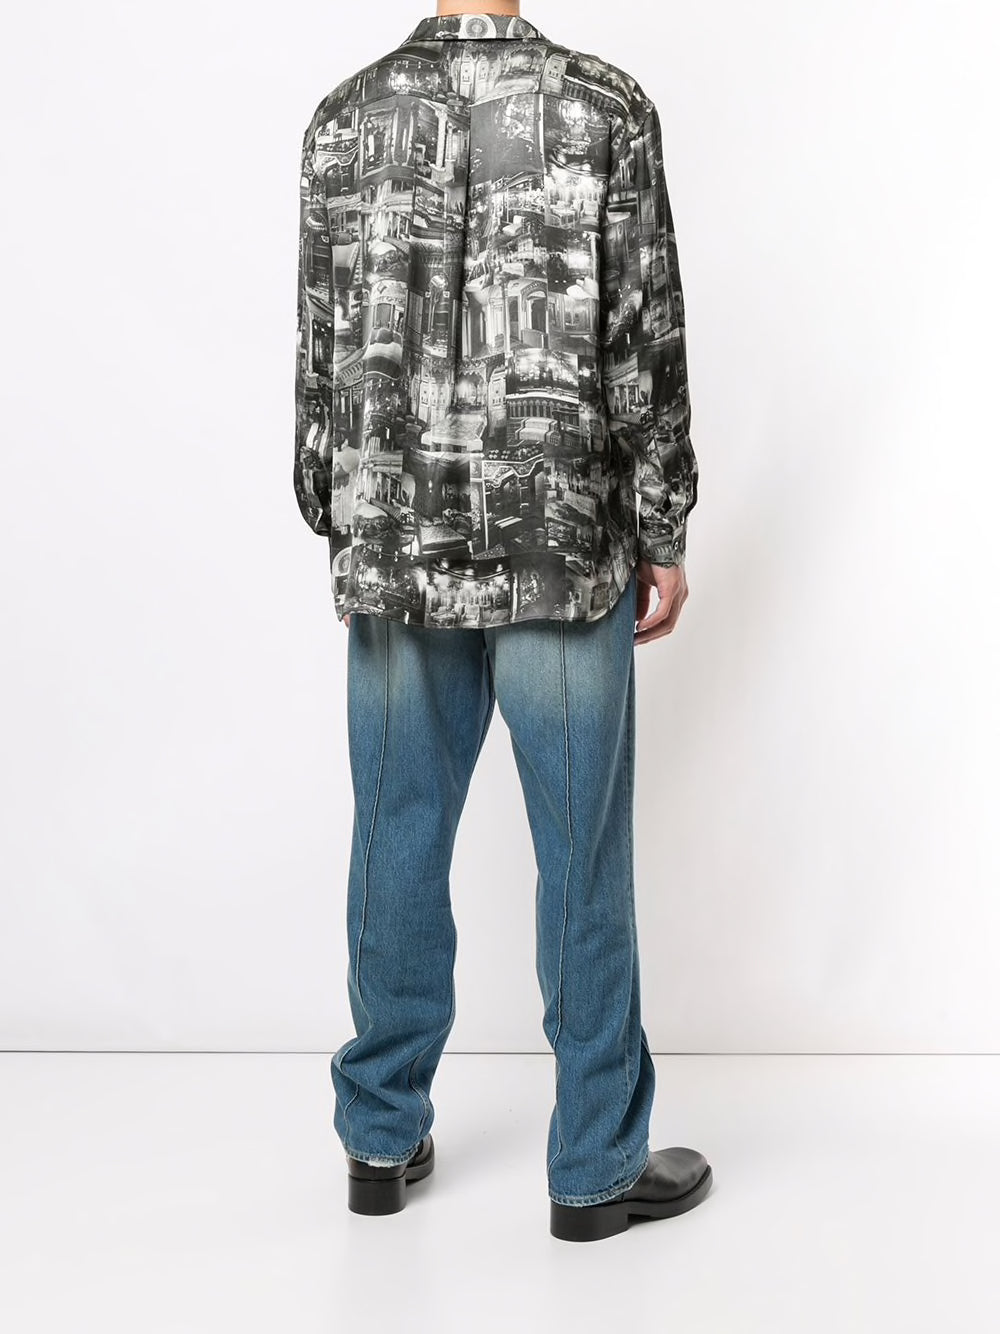 Y/PROJECT UNISEX PRINTED PYJAMA SHIRT